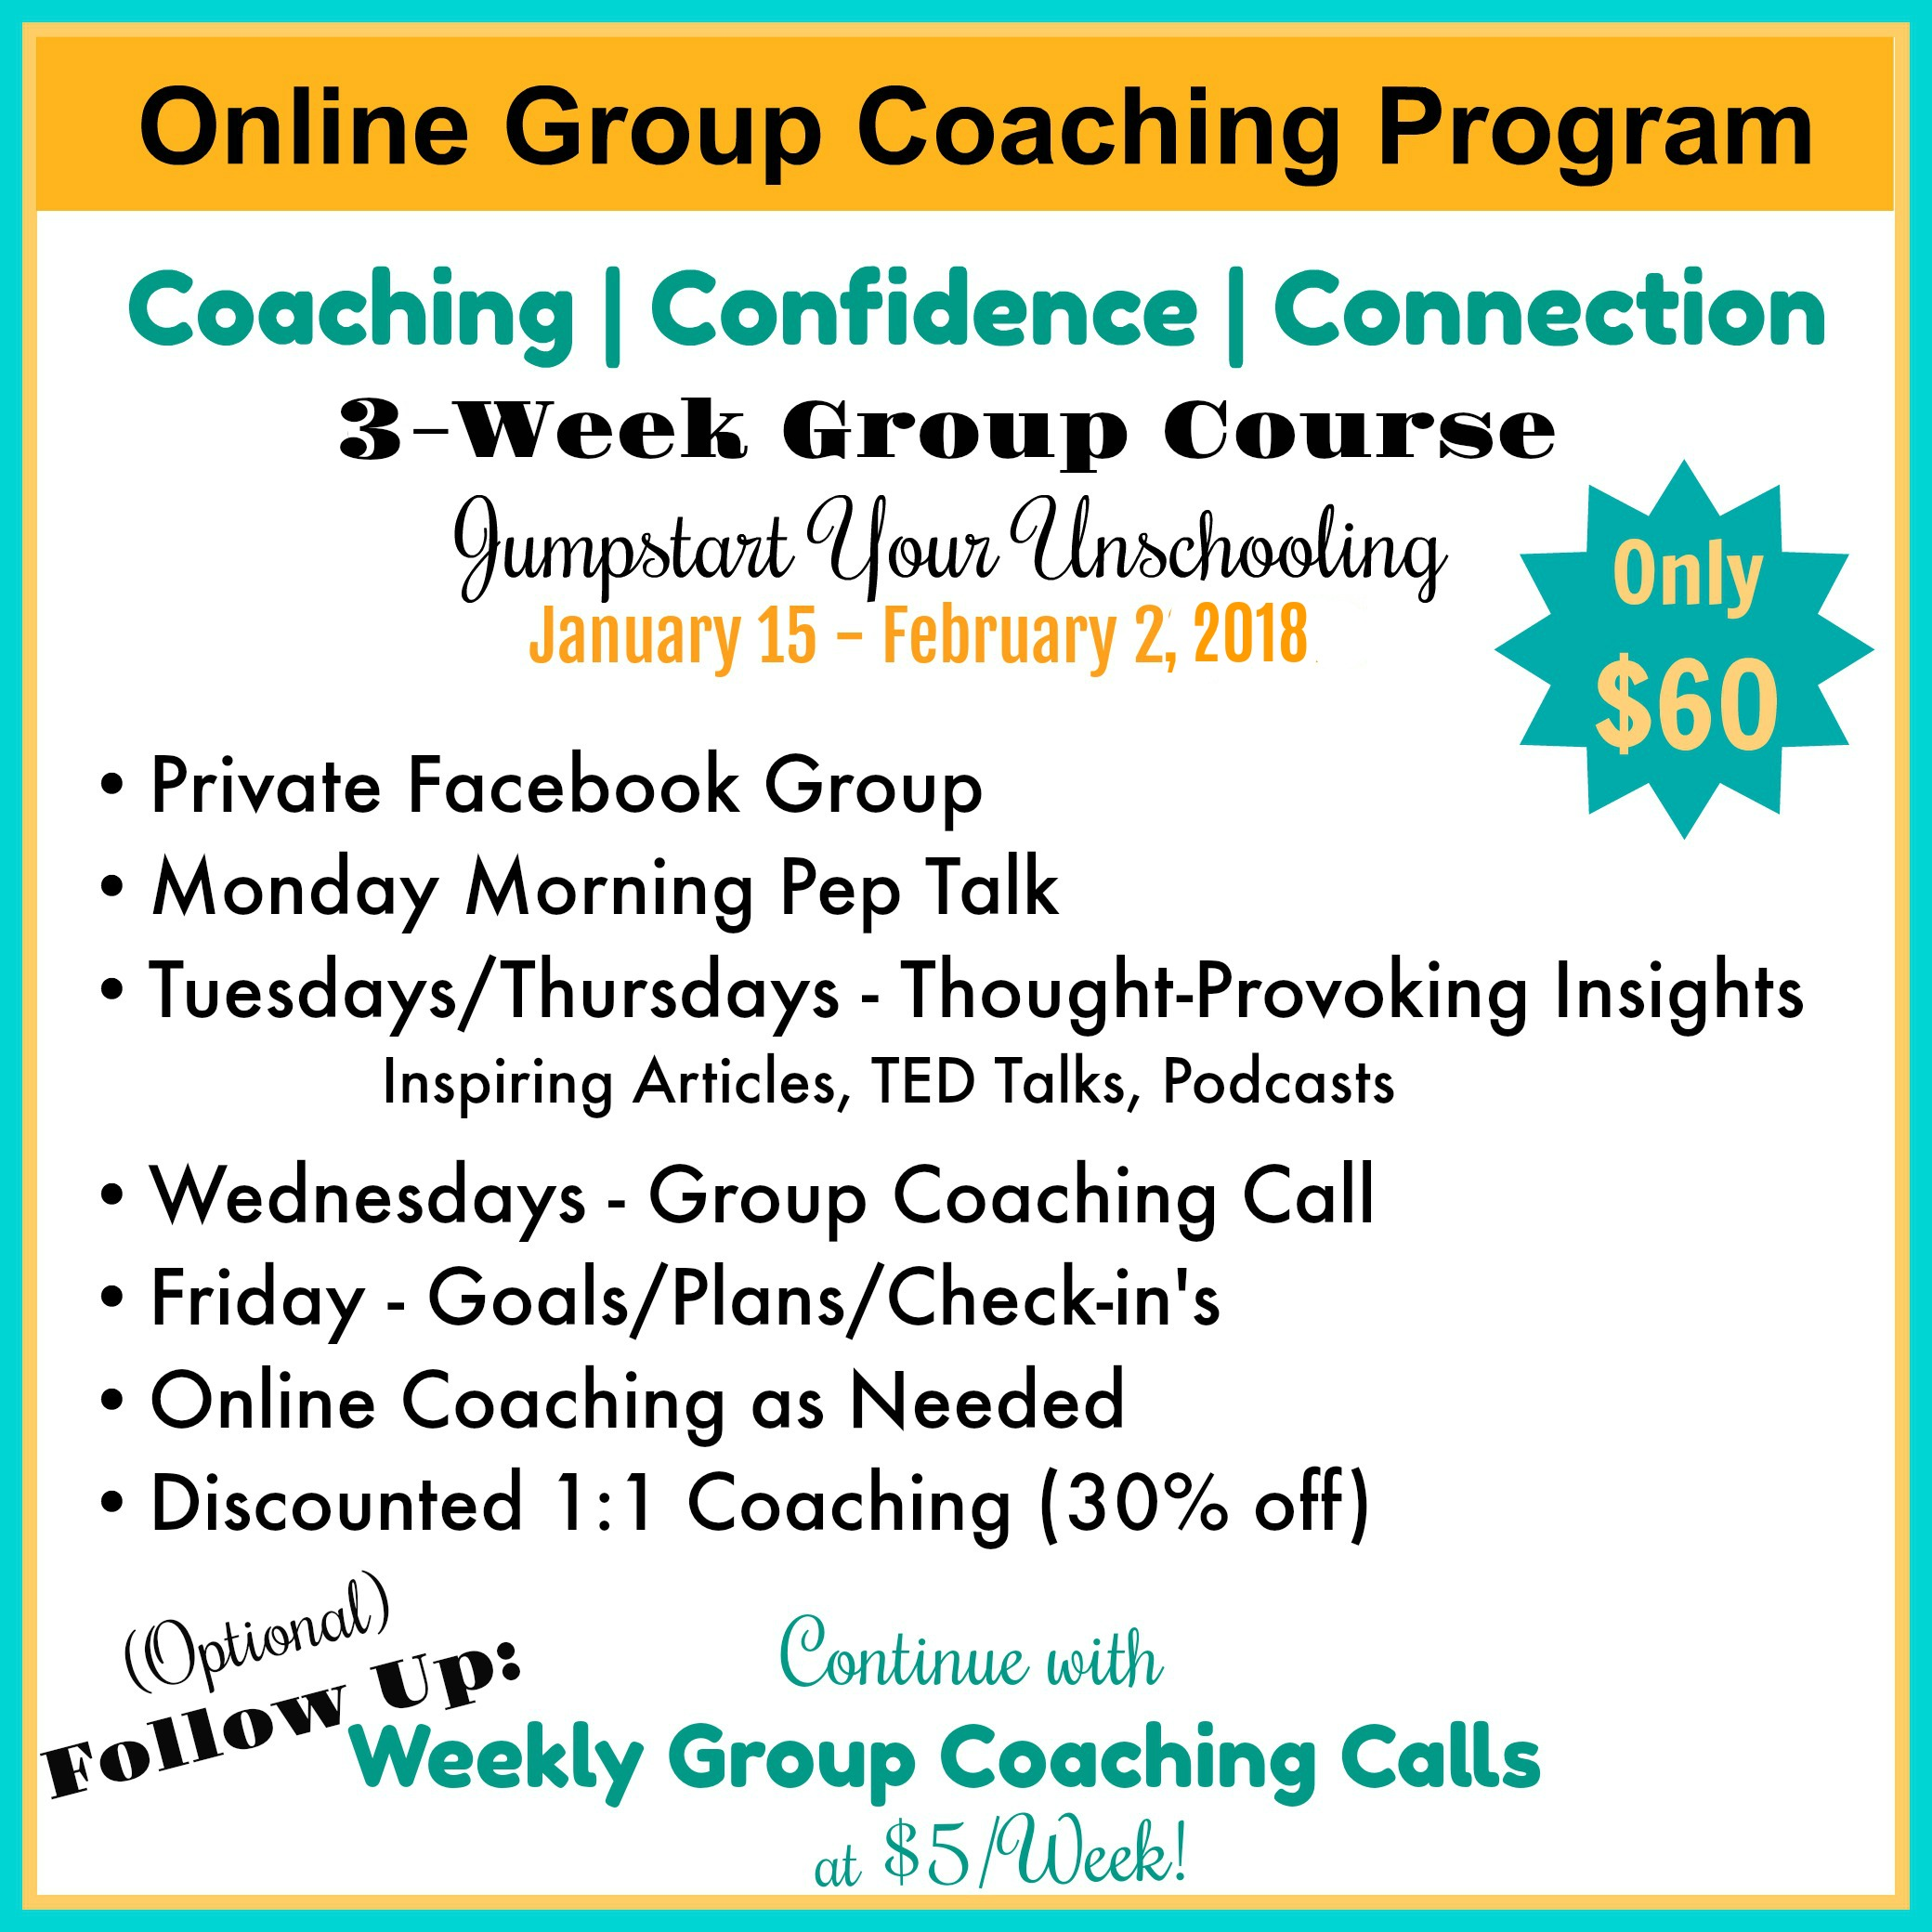 Sign Up Now - Don't Miss Out!